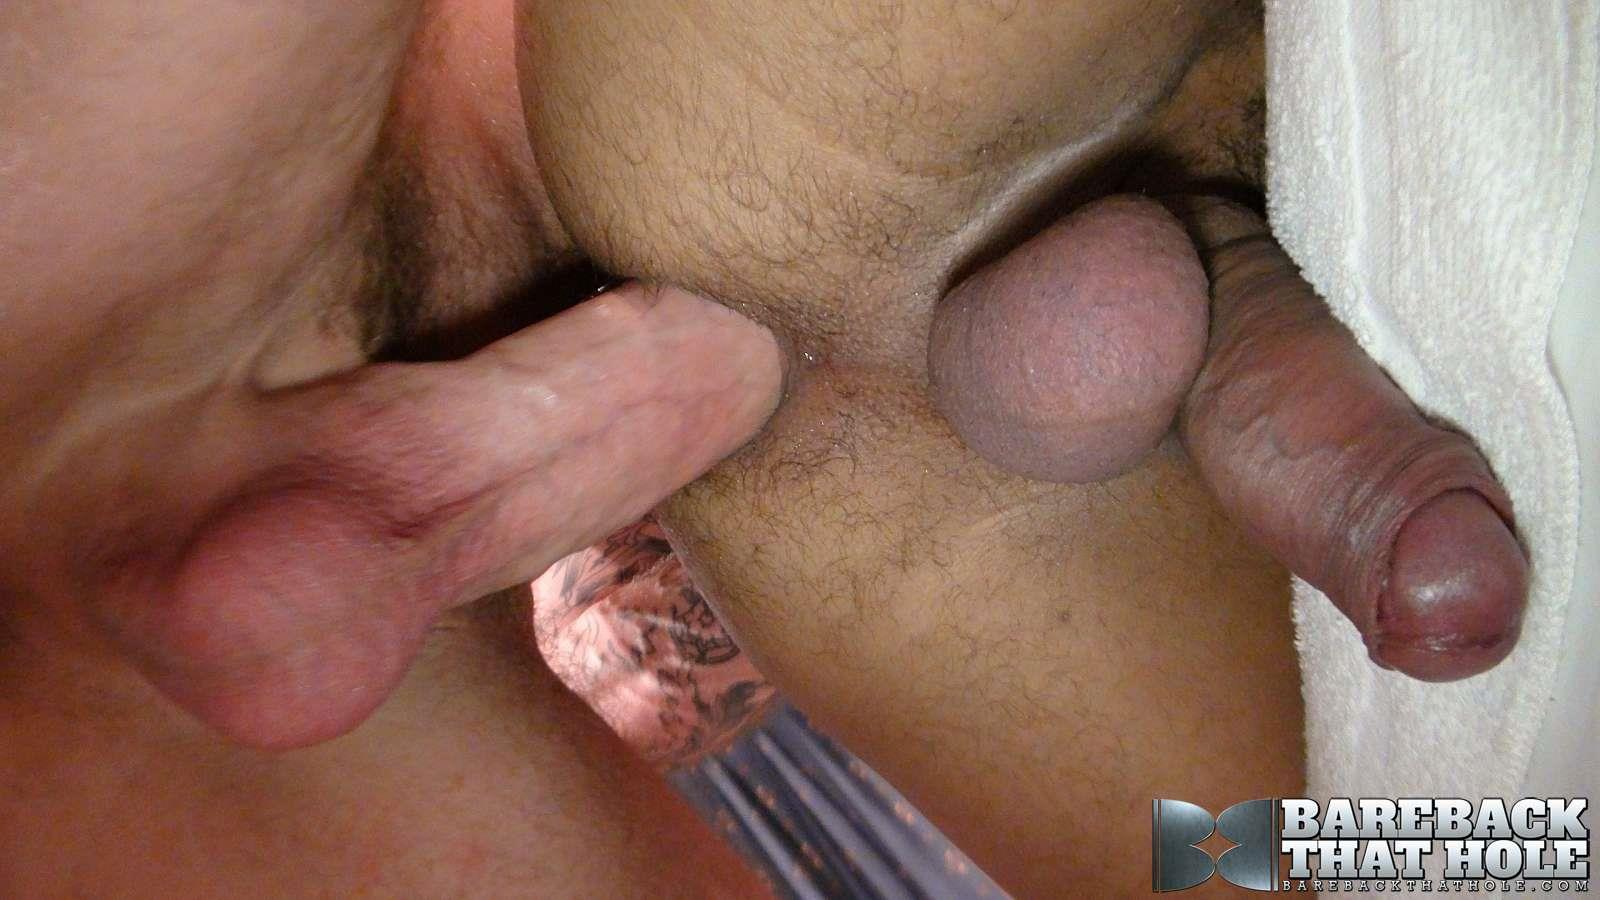 from Salvador gay ass hole stretched by cock